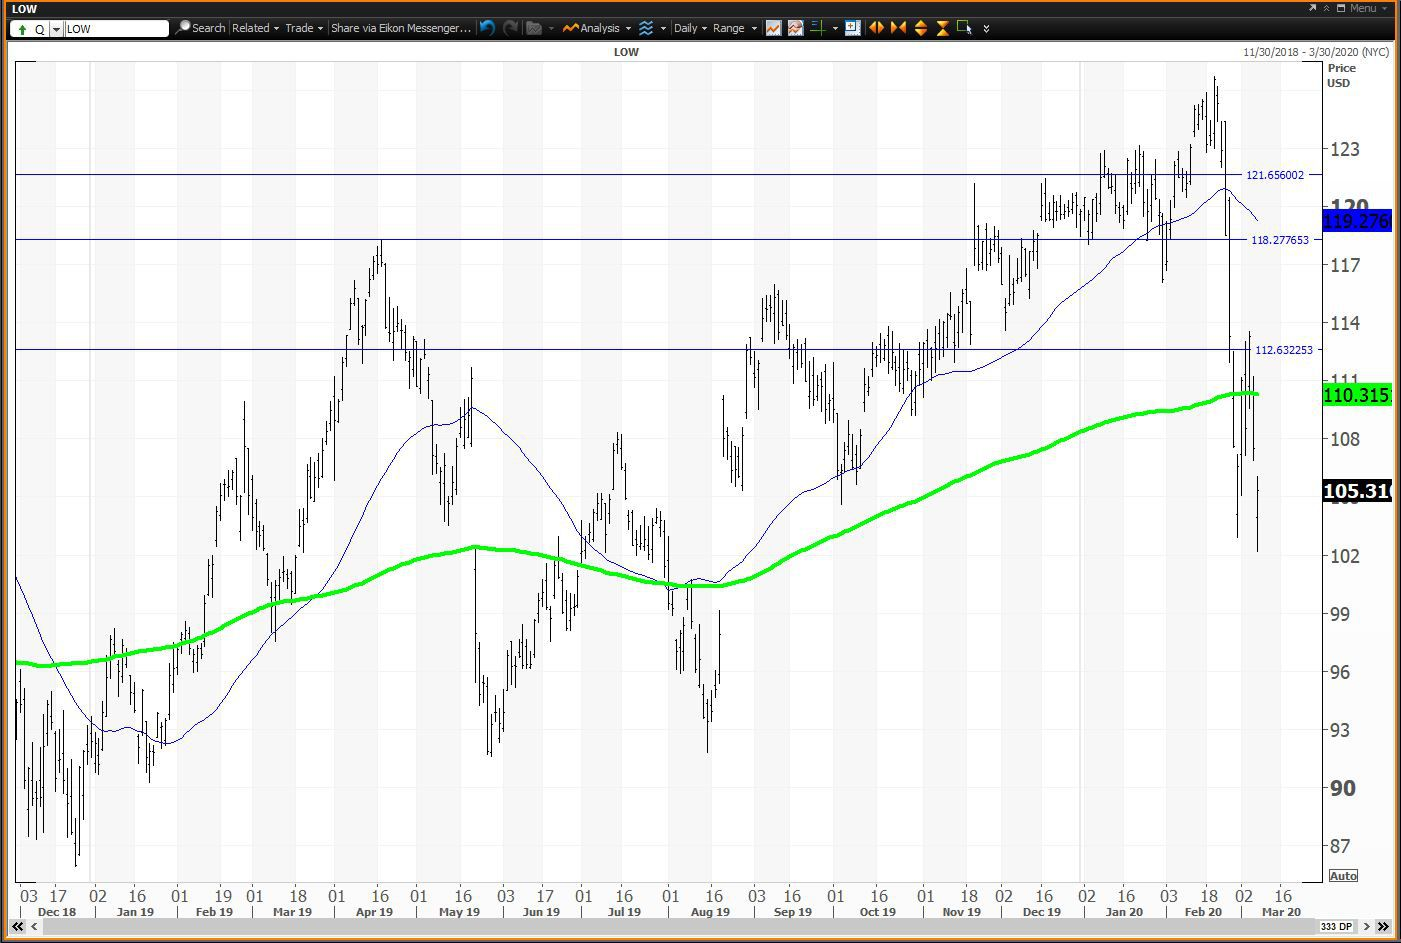 Daily chart showing the share price performance of Lowe's Companies, Inc. (LOW)